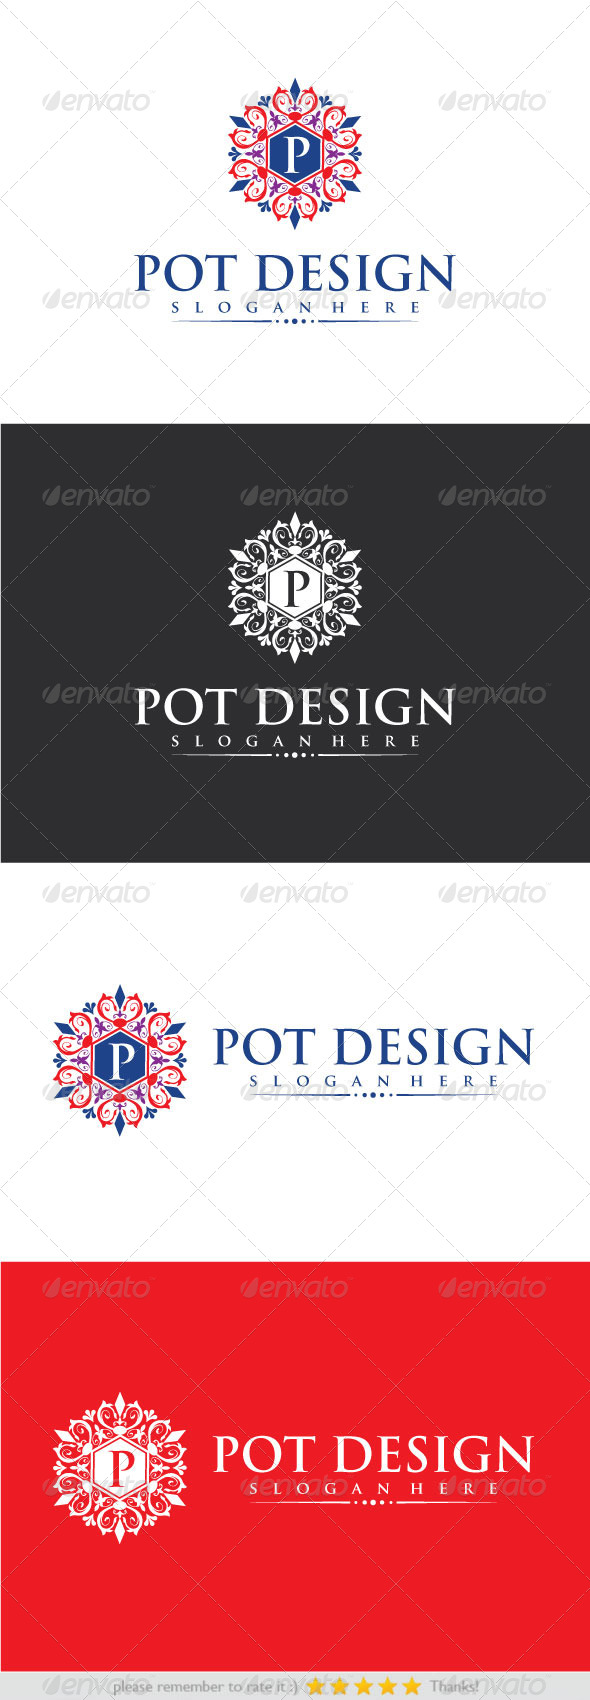 GraphicRiver Pot Design 8456279